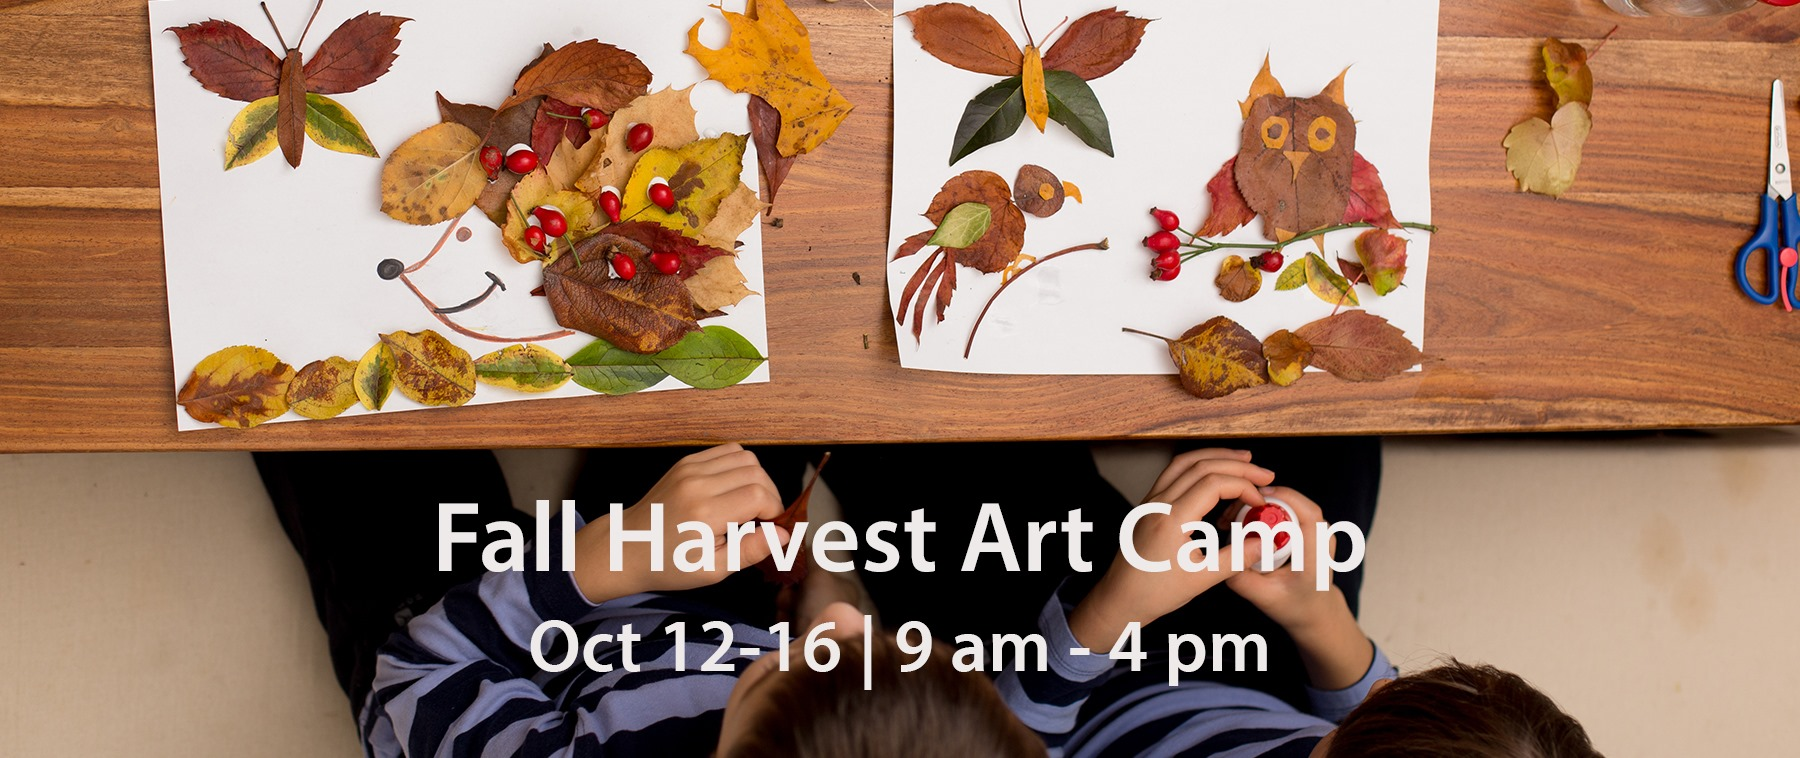 Fall Harvest Art Camp